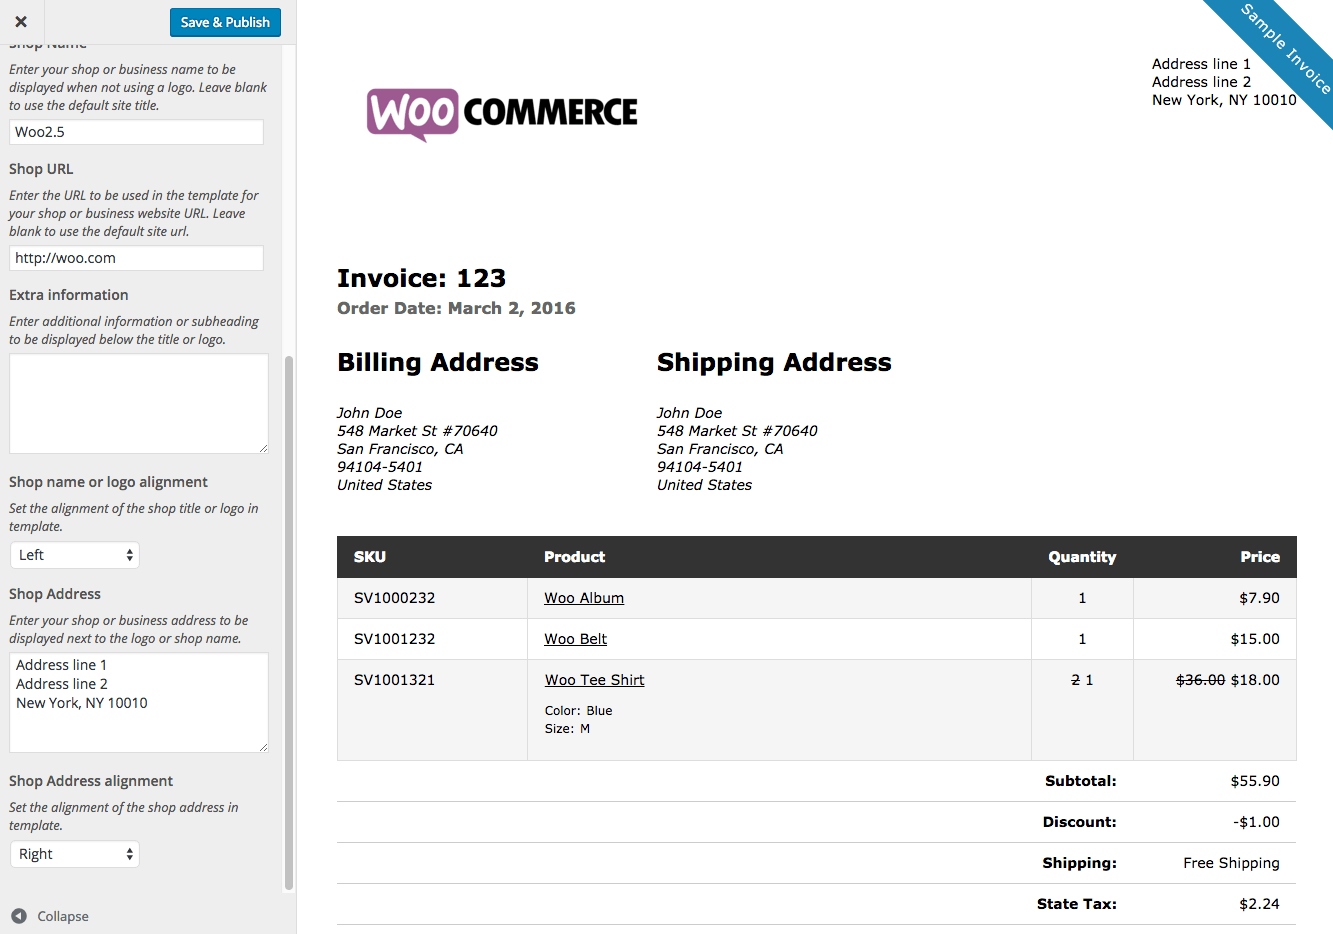 Hius  Sweet Print Invoices Amp Packing Lists  Woocommerce With Remarkable Woocommerce Print Invoices  Packing Lists Customizer With Astounding Invoice Discounting Advantages And Disadvantages Also Computer Invoice Software In Addition Self Billing Invoice And Invoice Template Australia Free As Well As Invoice Rejection Letter Additionally Salary Invoice Template From Woocommercecom With Hius  Remarkable Print Invoices Amp Packing Lists  Woocommerce With Astounding Woocommerce Print Invoices  Packing Lists Customizer And Sweet Invoice Discounting Advantages And Disadvantages Also Computer Invoice Software In Addition Self Billing Invoice From Woocommercecom